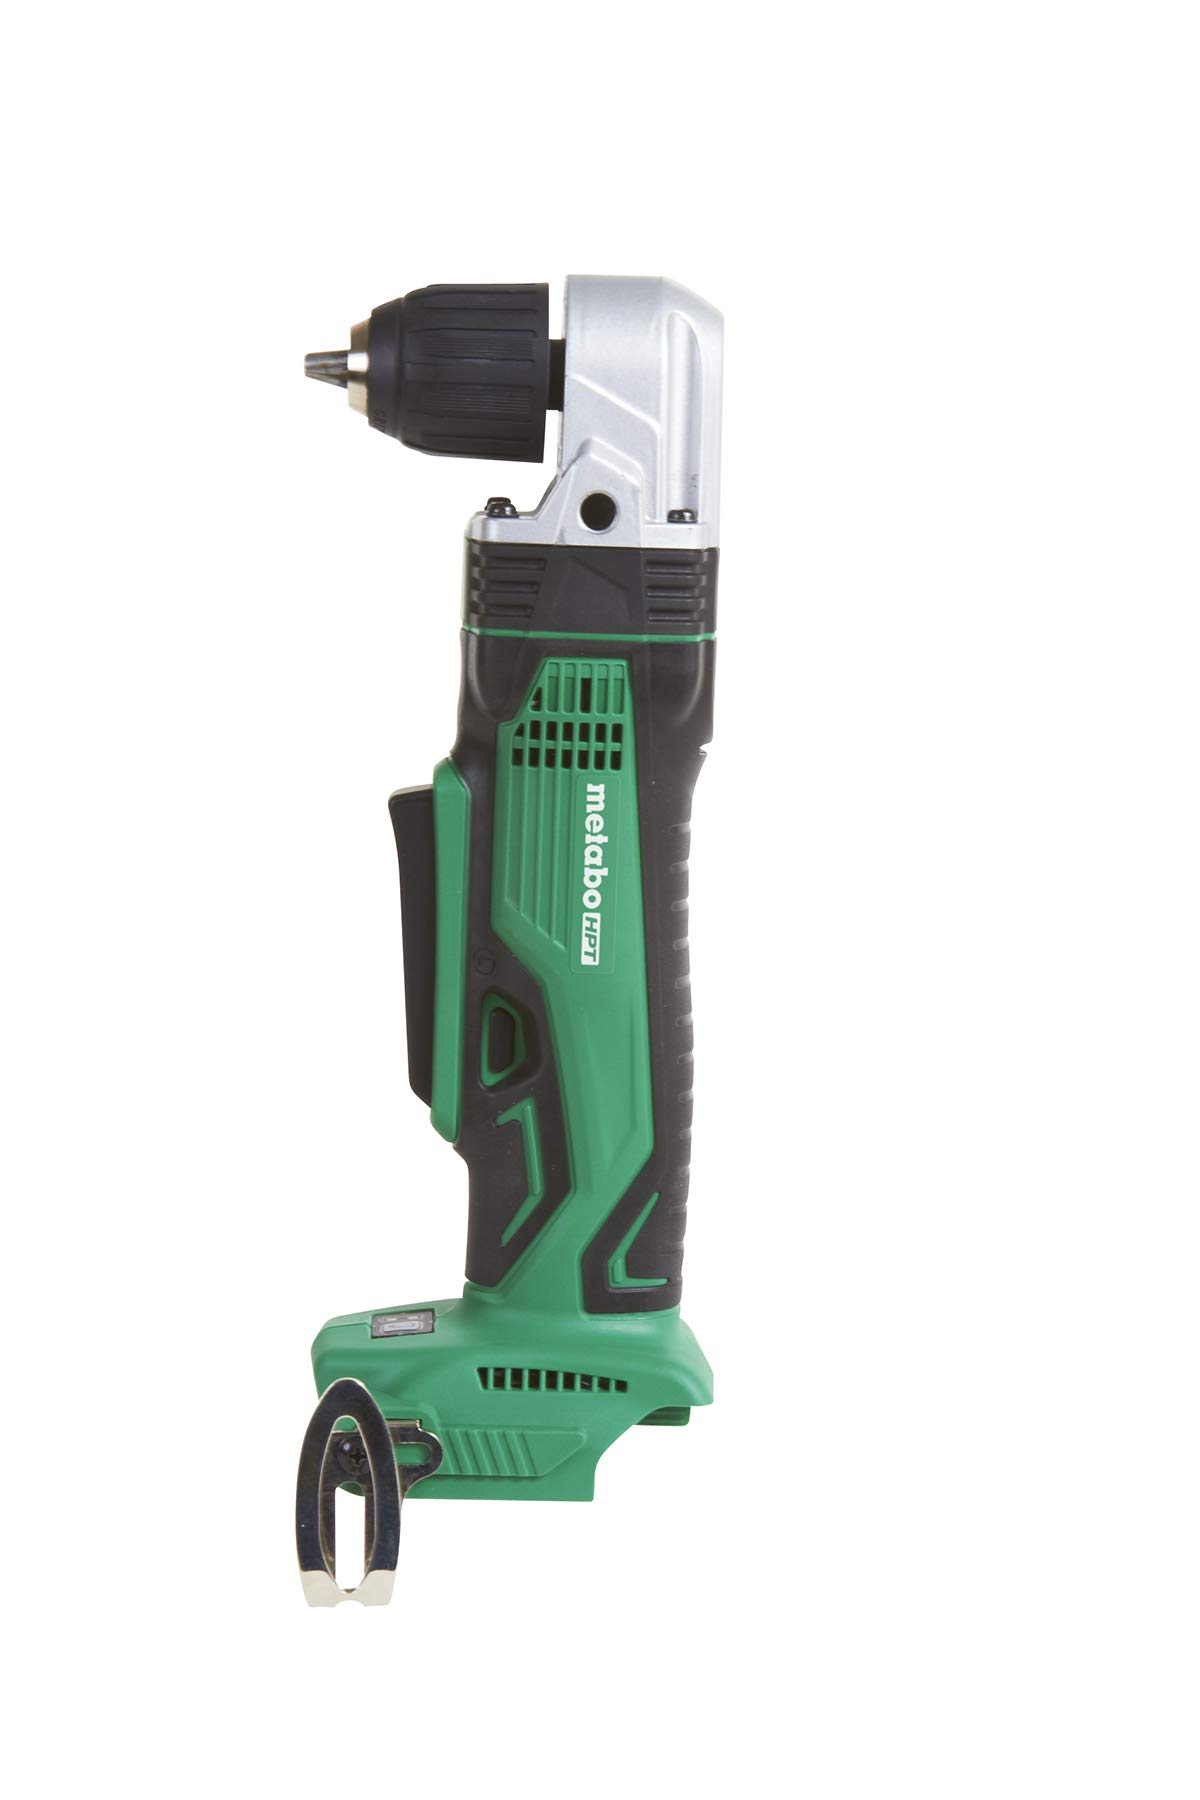 Metabo HPT DN18DSLQ4 18V Cordless Right Angle Drill, Tool Only - No Battery, 3/8-Inch Keyless Chuck, LED Job Light, Side Handle, Compatible with Hitachi/Metabo HPT 18V Lithium Ion Slide-Type Batteries